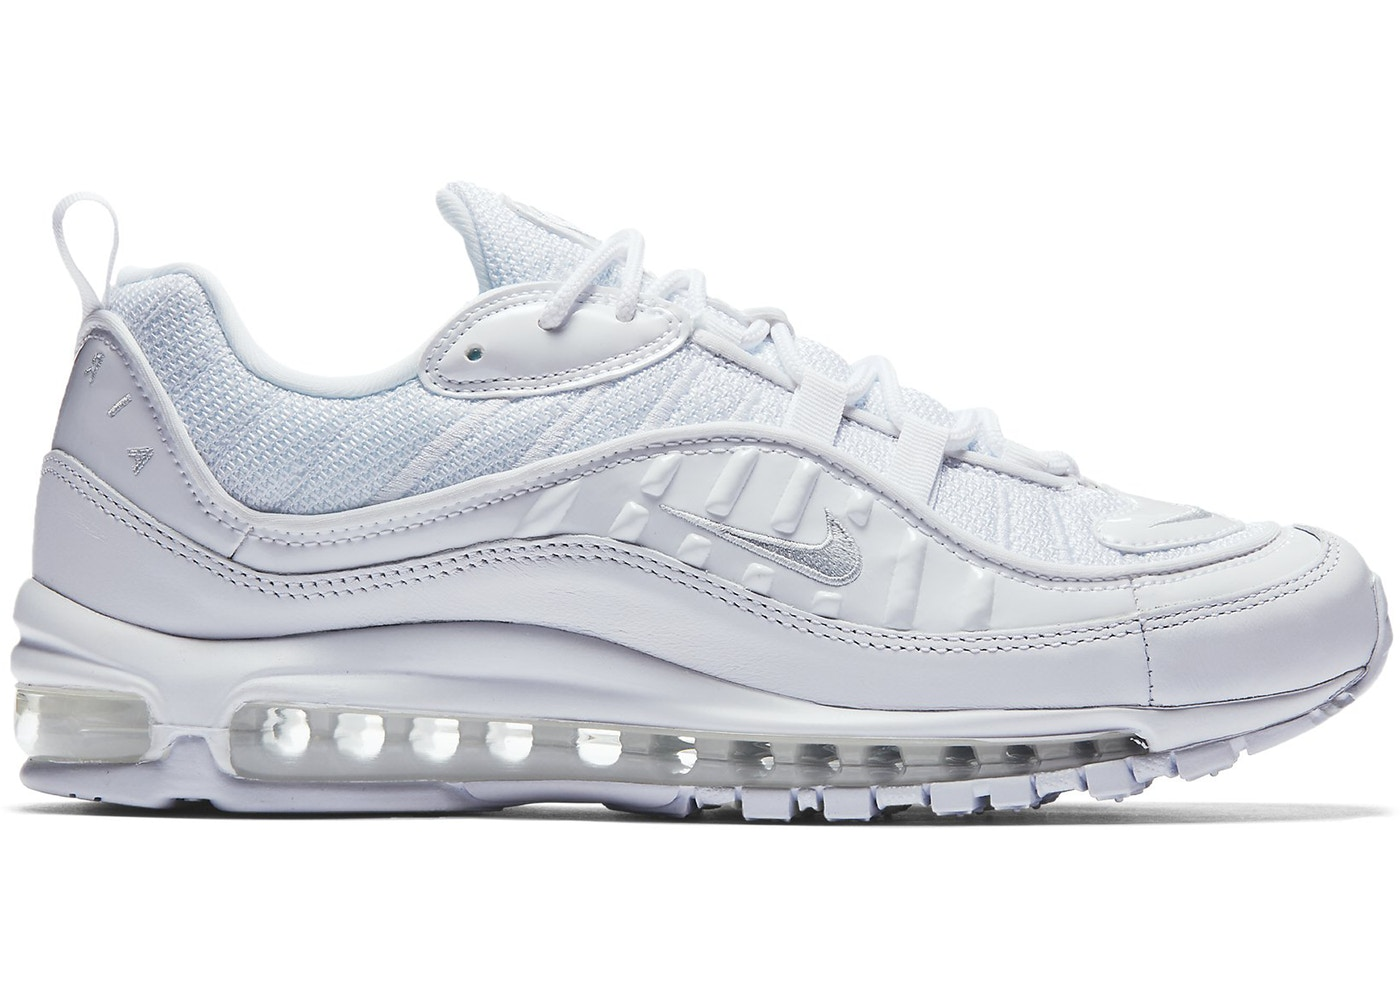 0991ff91 Air Max 98 White - 640744-106